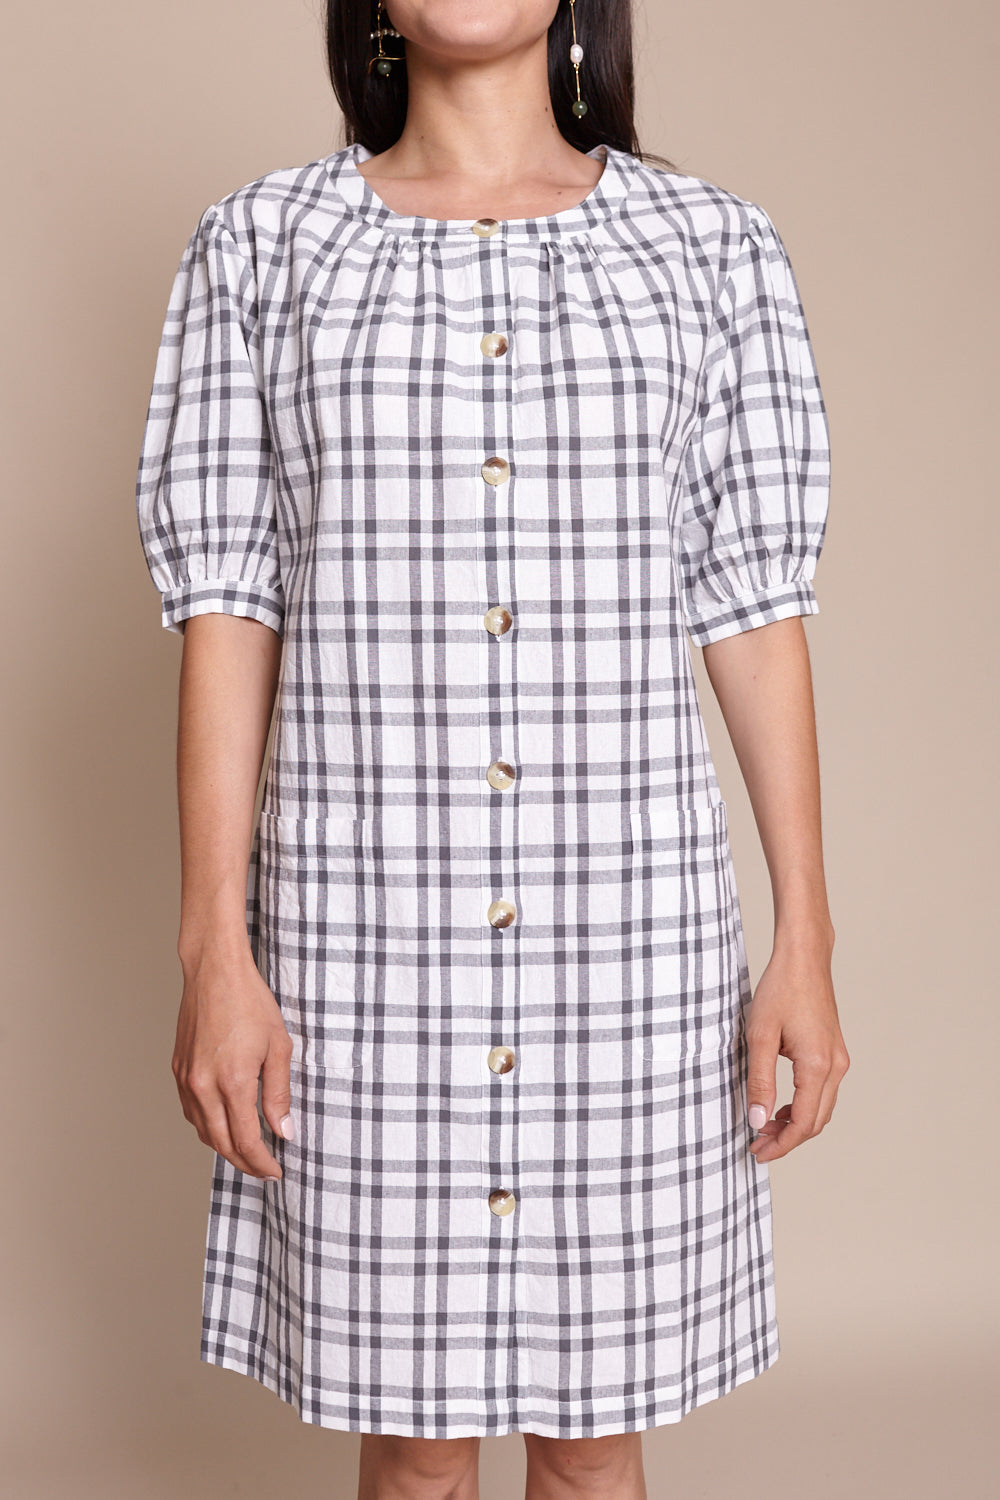 Steven Alan Puff Sleeve Shirt Dress in Grey - Vert & Vogue